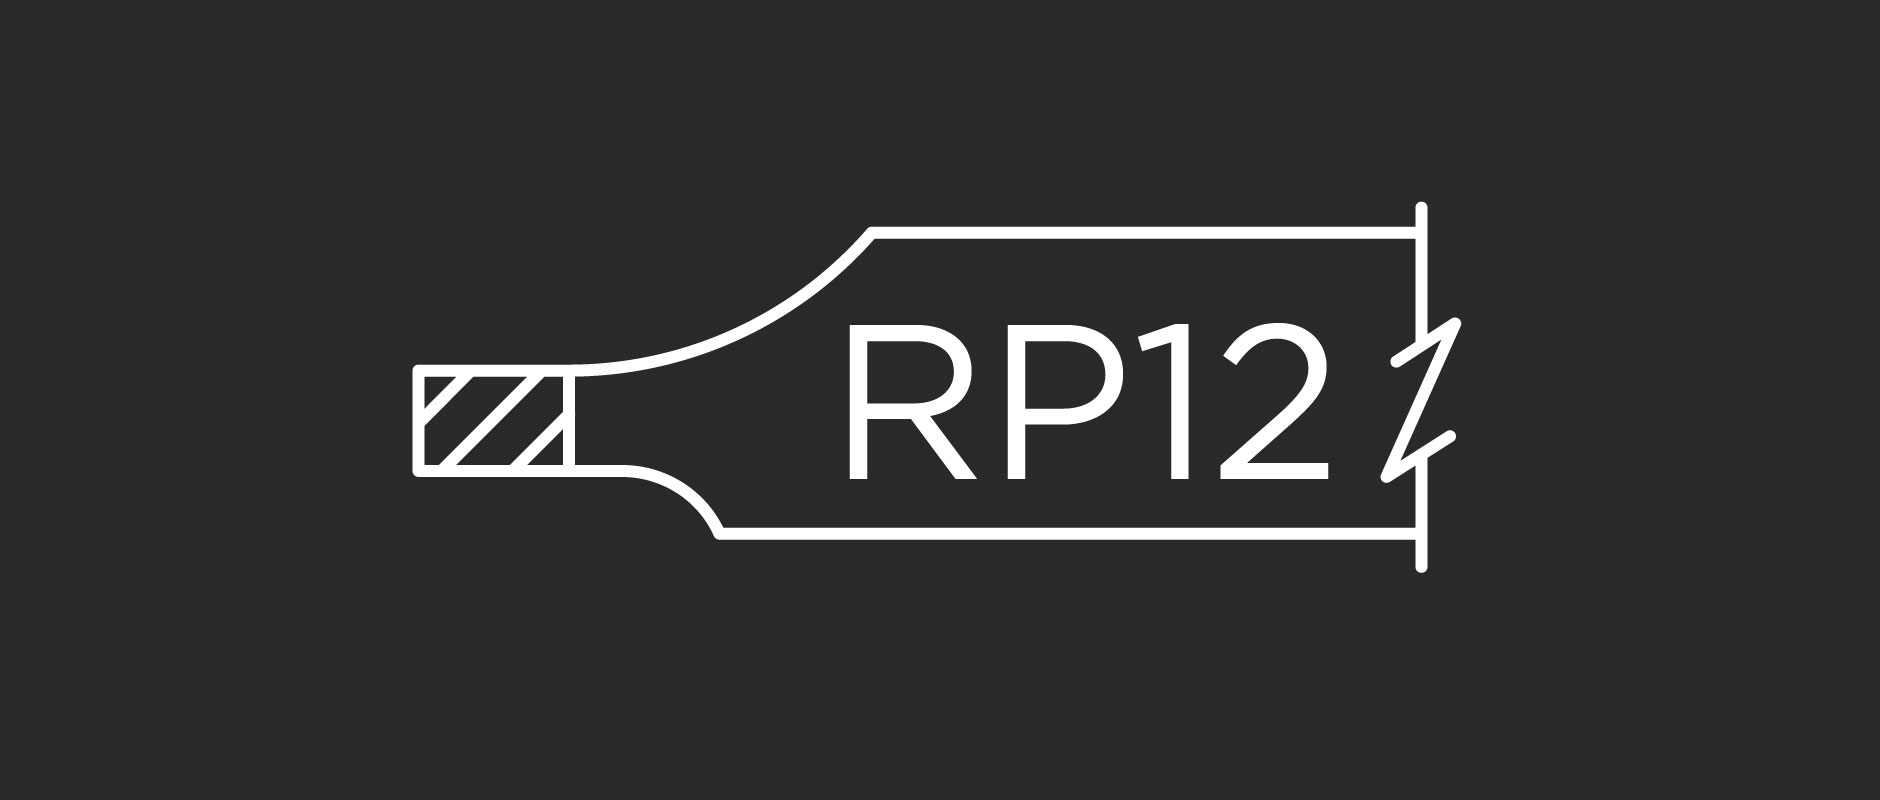 RP12 raised panel profile